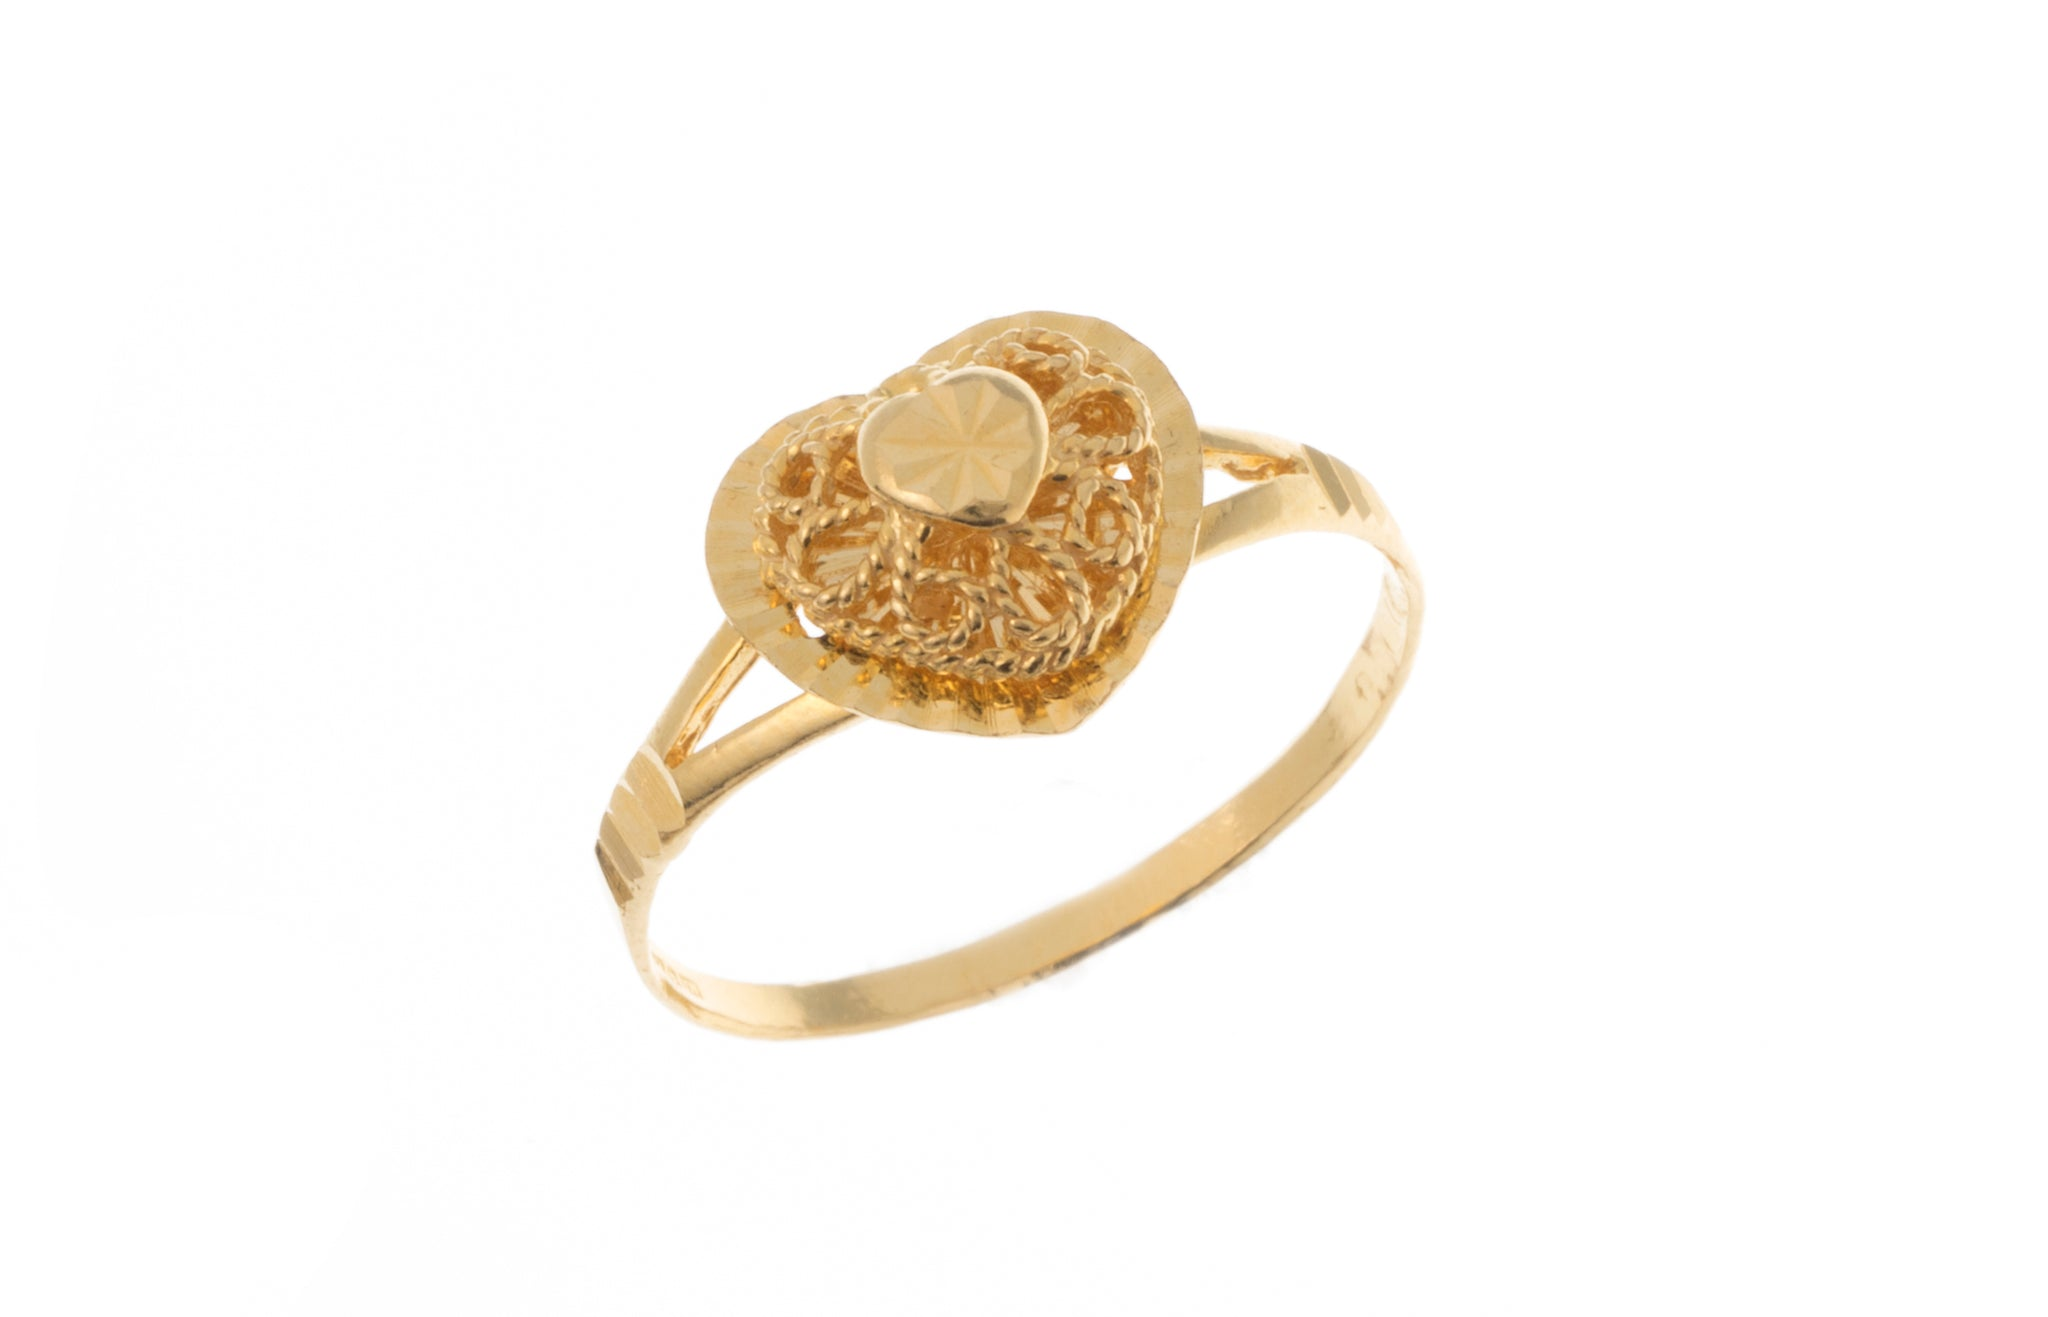 22ct Gold Ring with Filigree Heart Design (1.9g) LR-7344